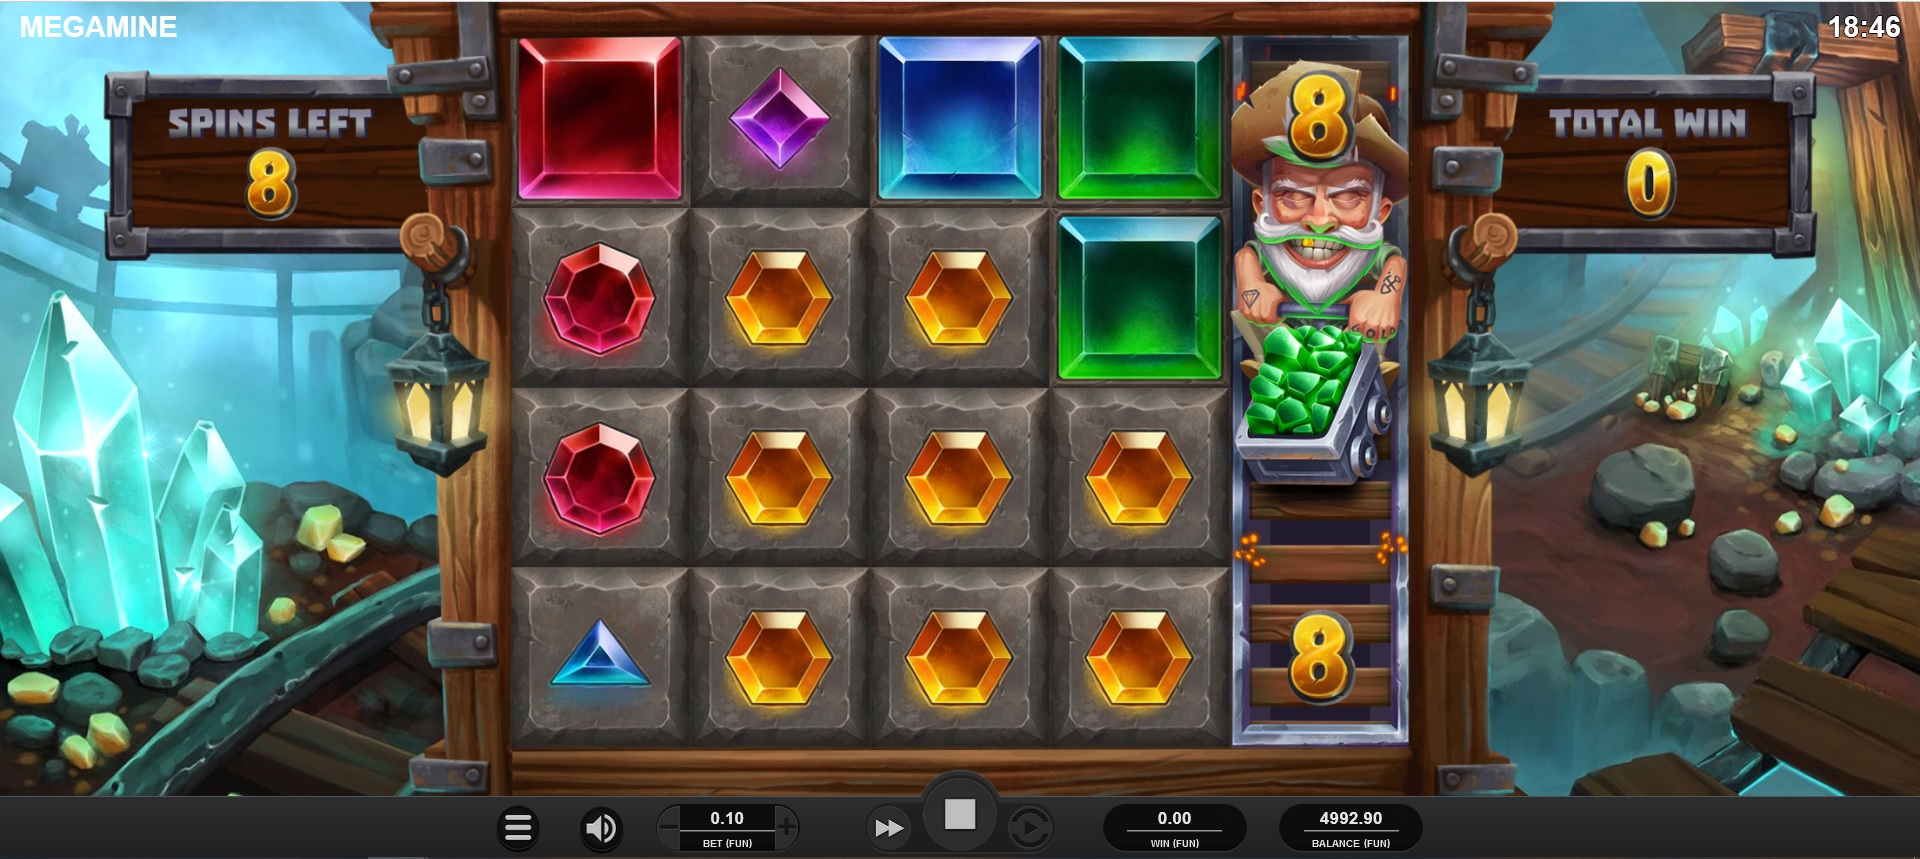 How to win big in Mega Mine Nudging Ways – Nudging Mystery Stacks